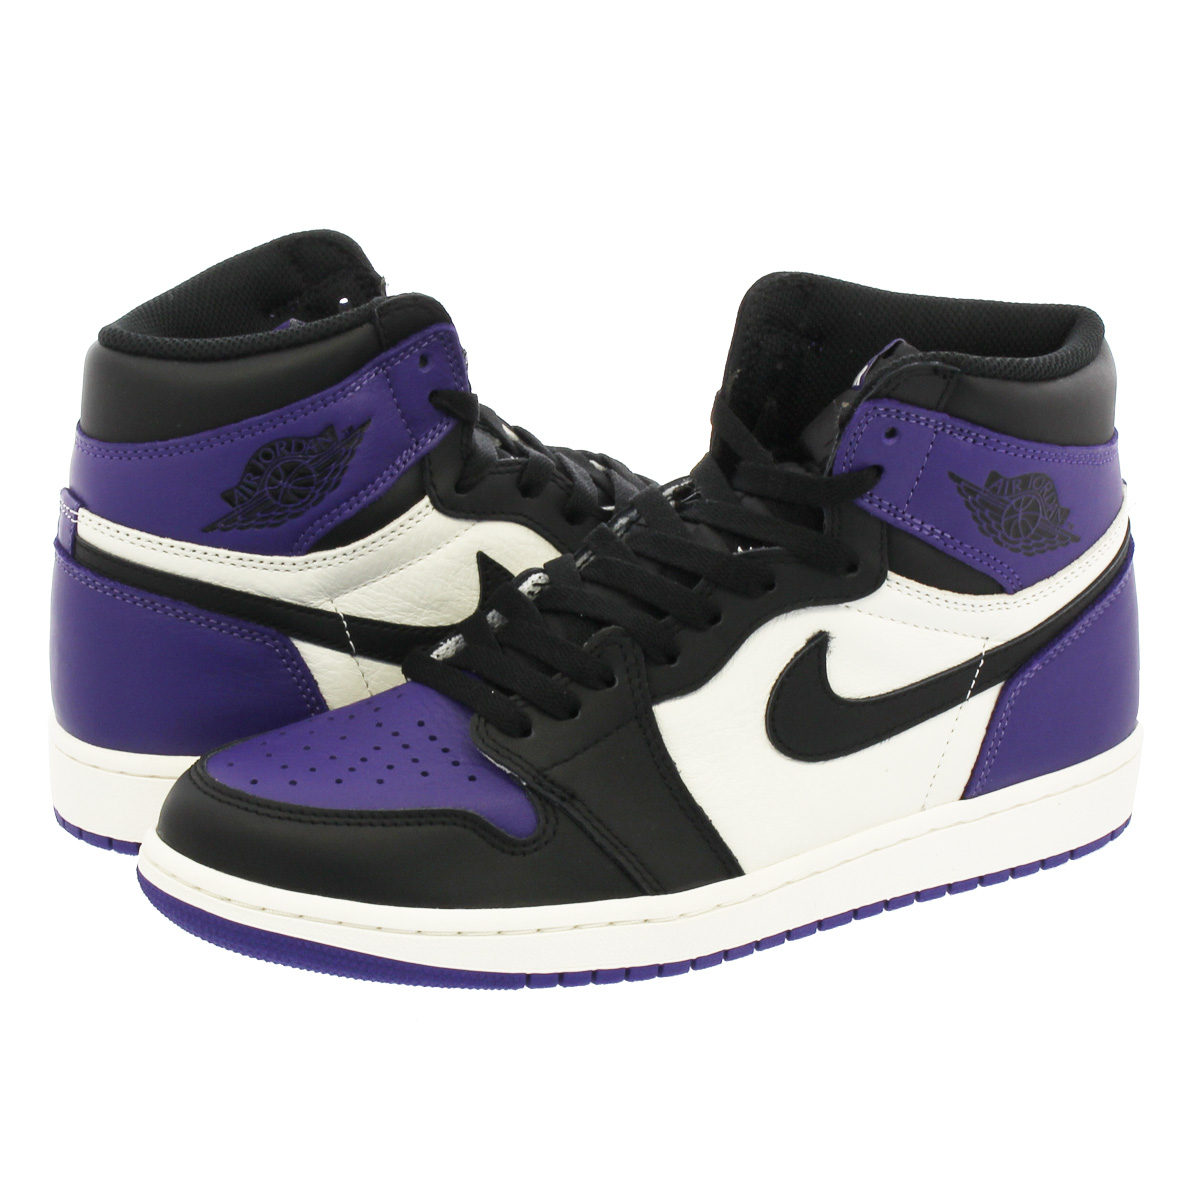 official images discount info for NIKE AIR JORDAN 1 RETRO HIGH OG Nike Air Jordan 1 nostalgic high OG COURT  PURPLE/BLACK/SAIL 555,088-501